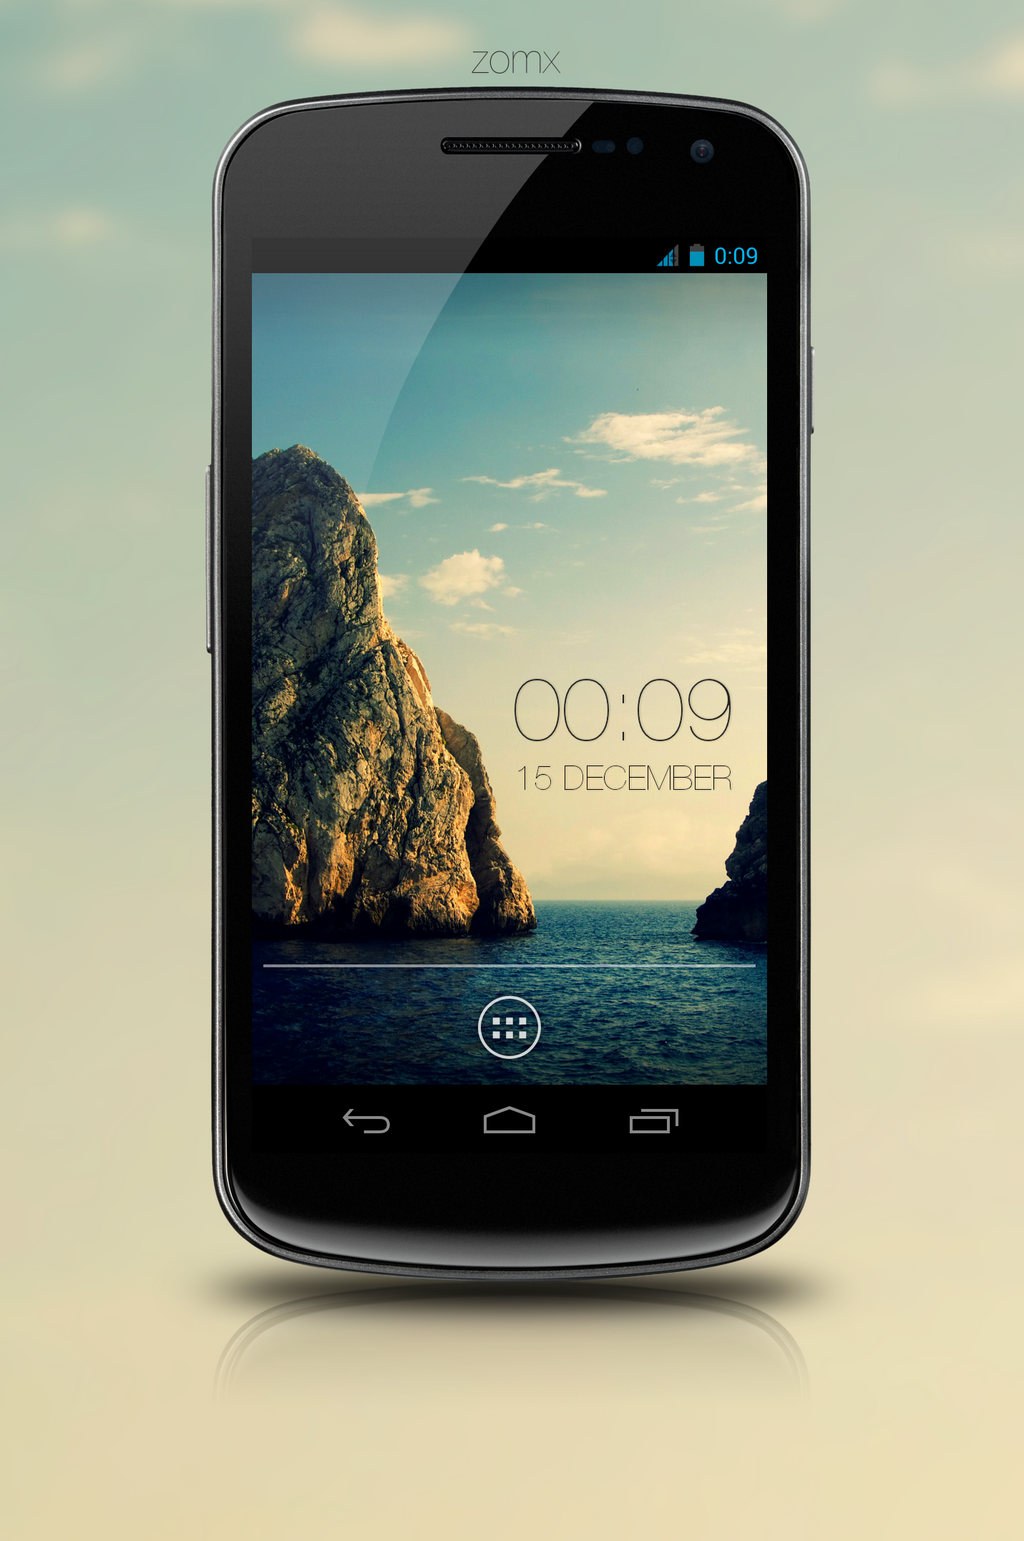 Galaxy Nexus v3 by zomx